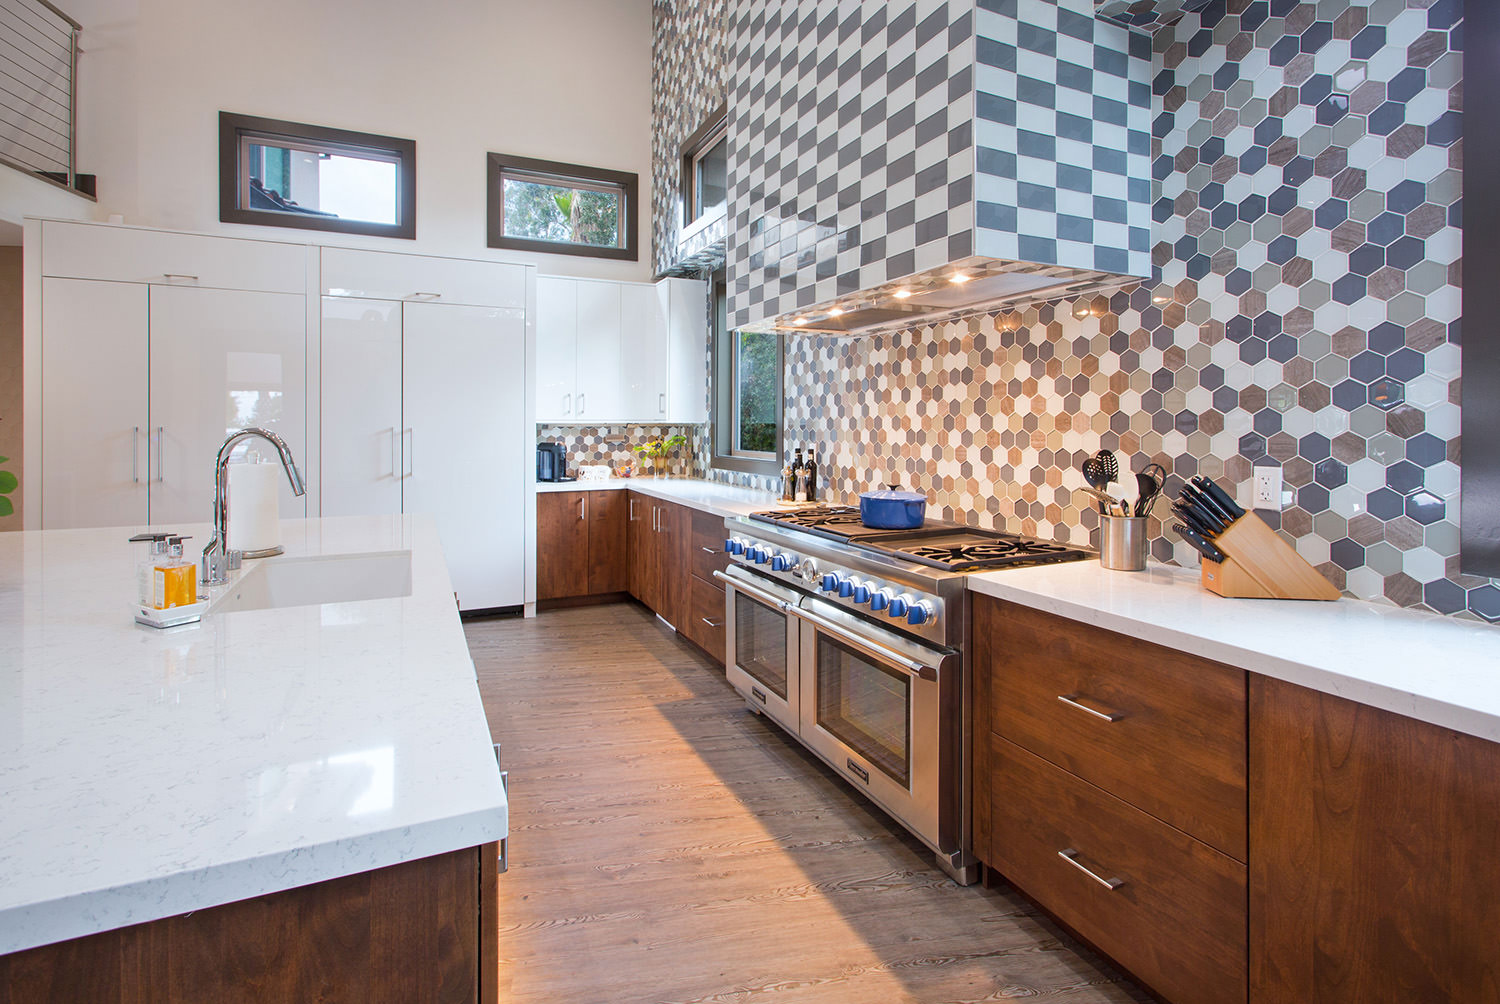 kitchen-interior-design-los-altos-california-ktj-design-co-8.jpg